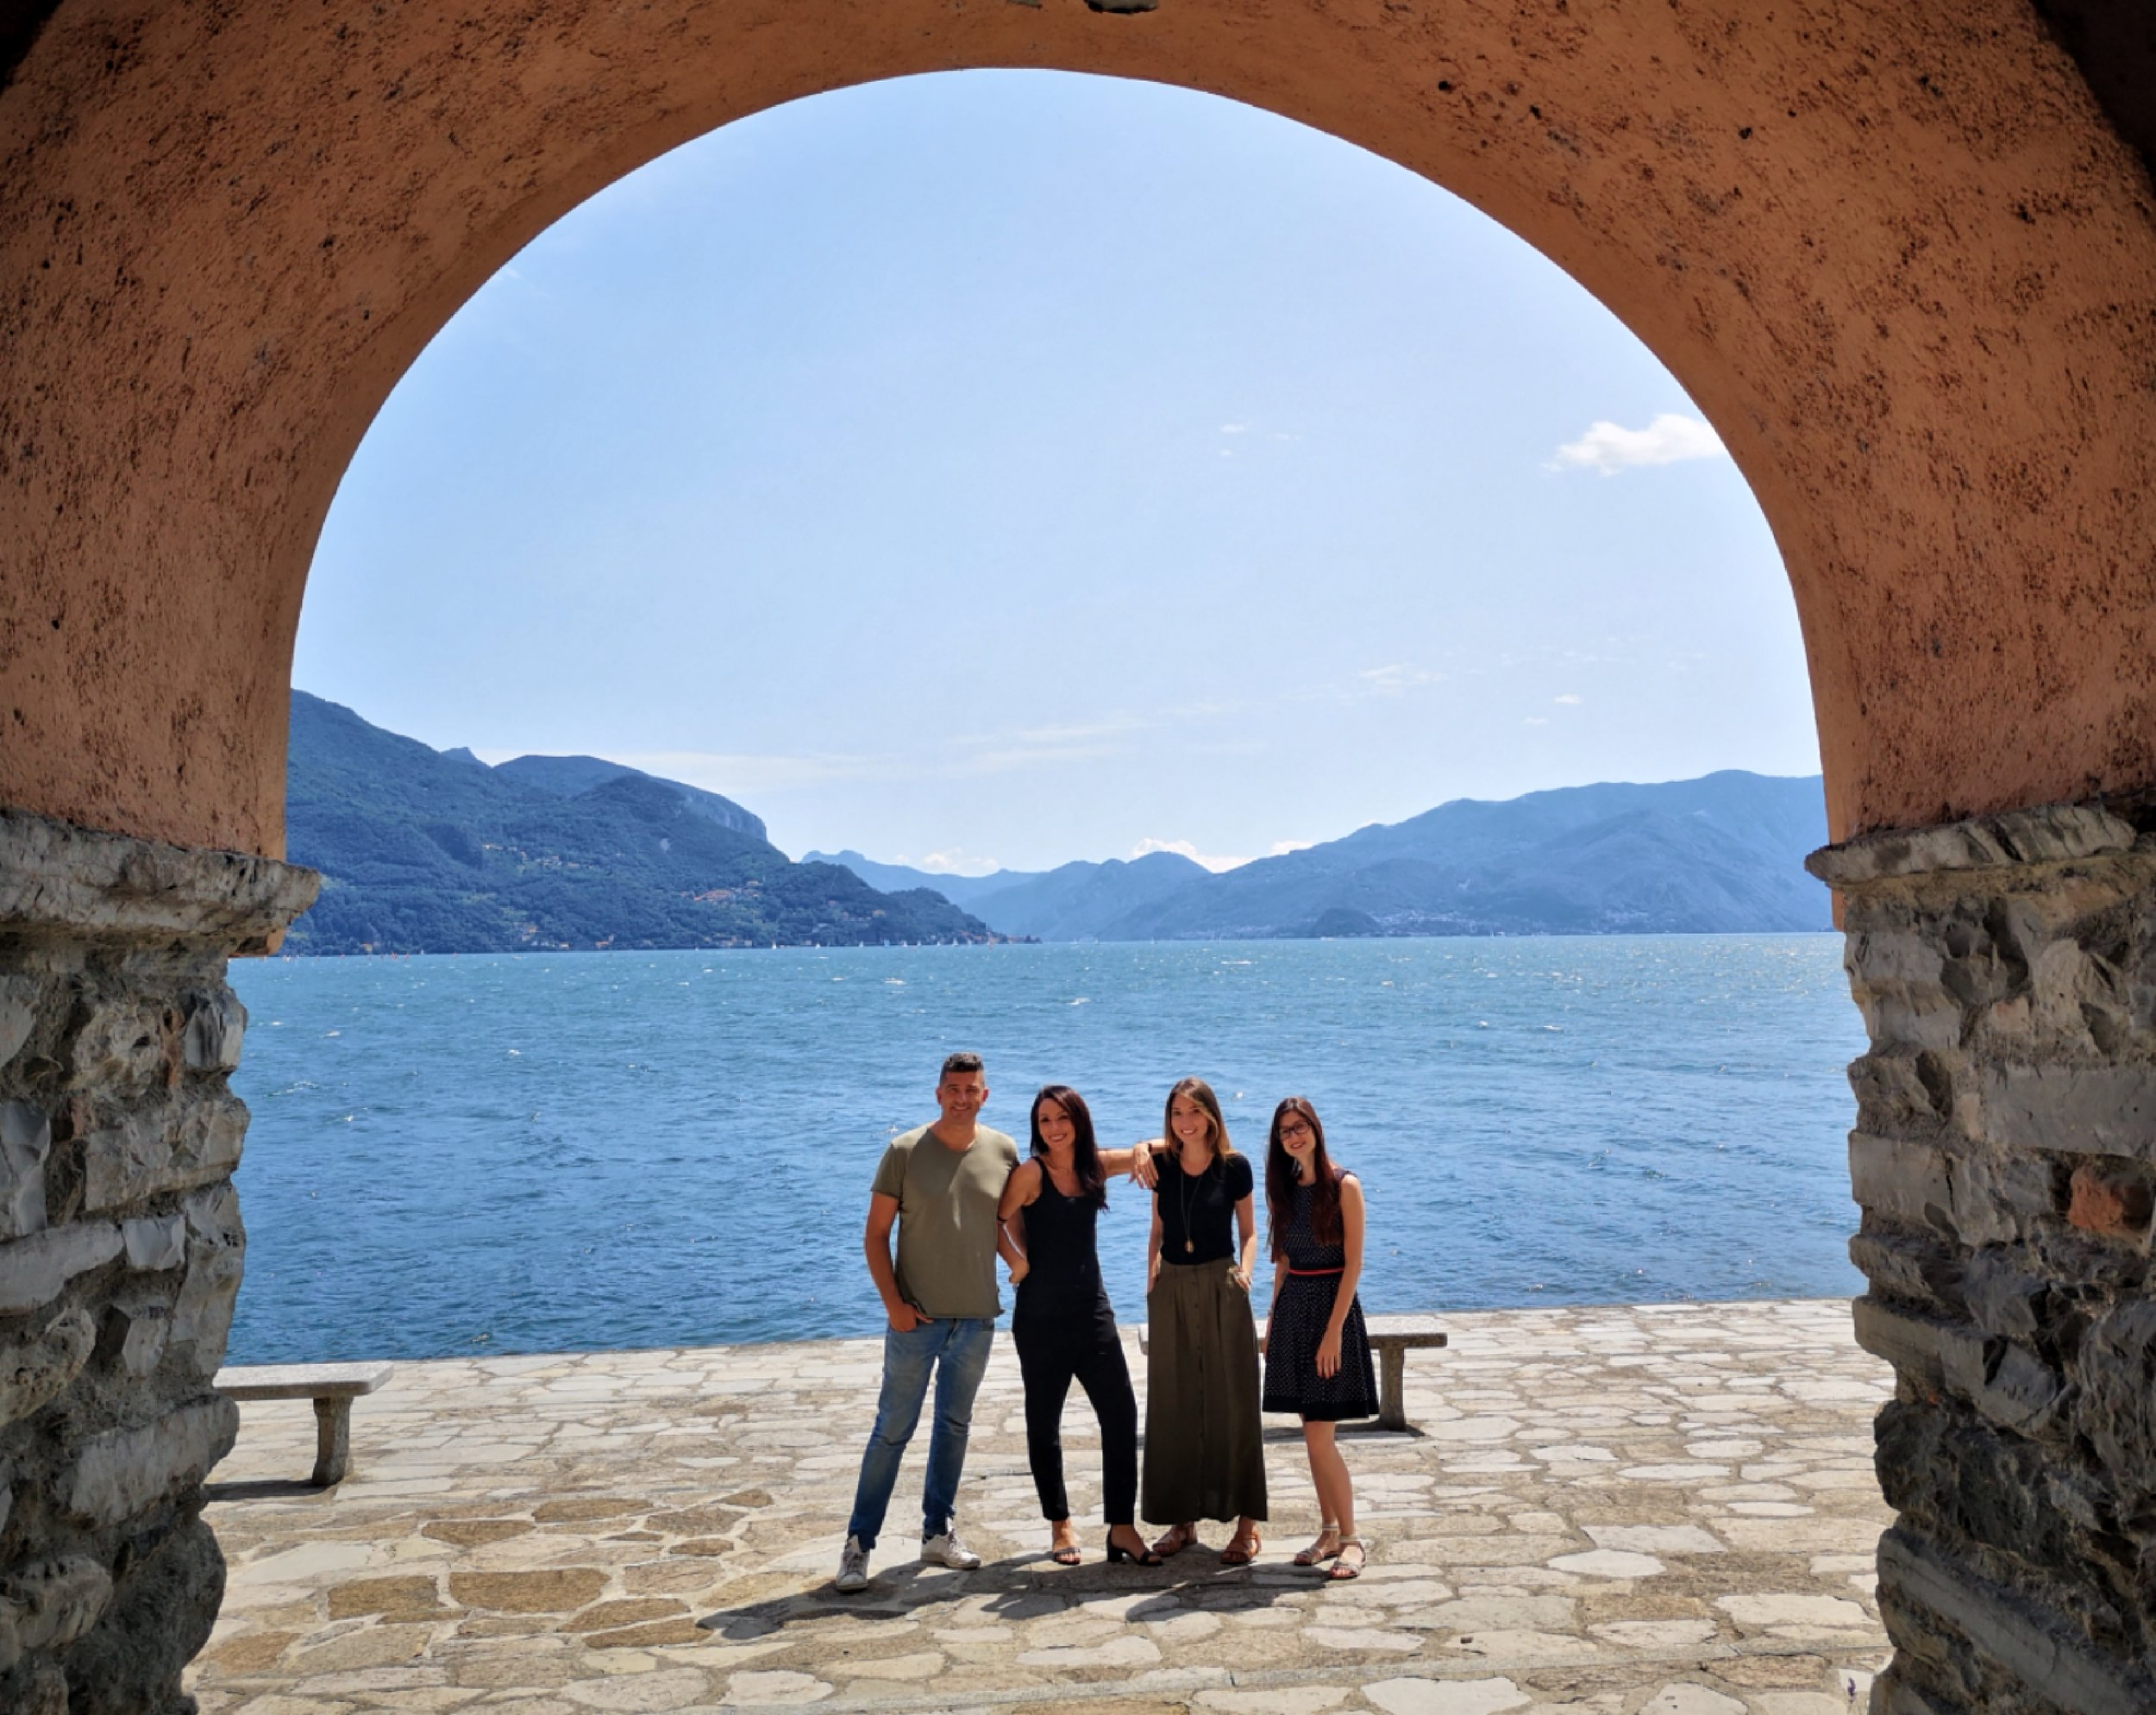 hi there! - We are a Real Estate agency made of locals.This blog is a room where we do what we love most: talking about Lake Como. Travel tips, real estate insights, and the behind the scenes of our work as realtors.Stay tuned!